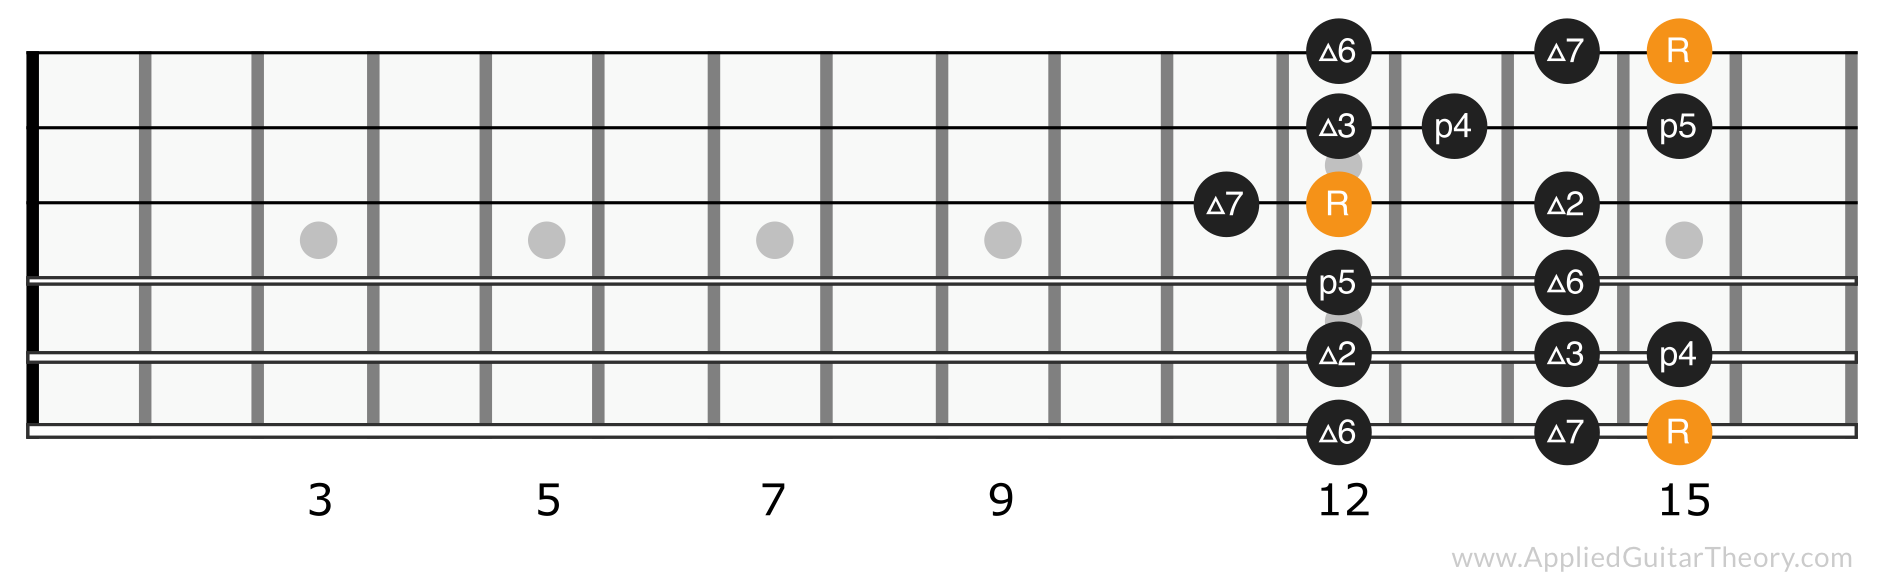 Major scale position 5